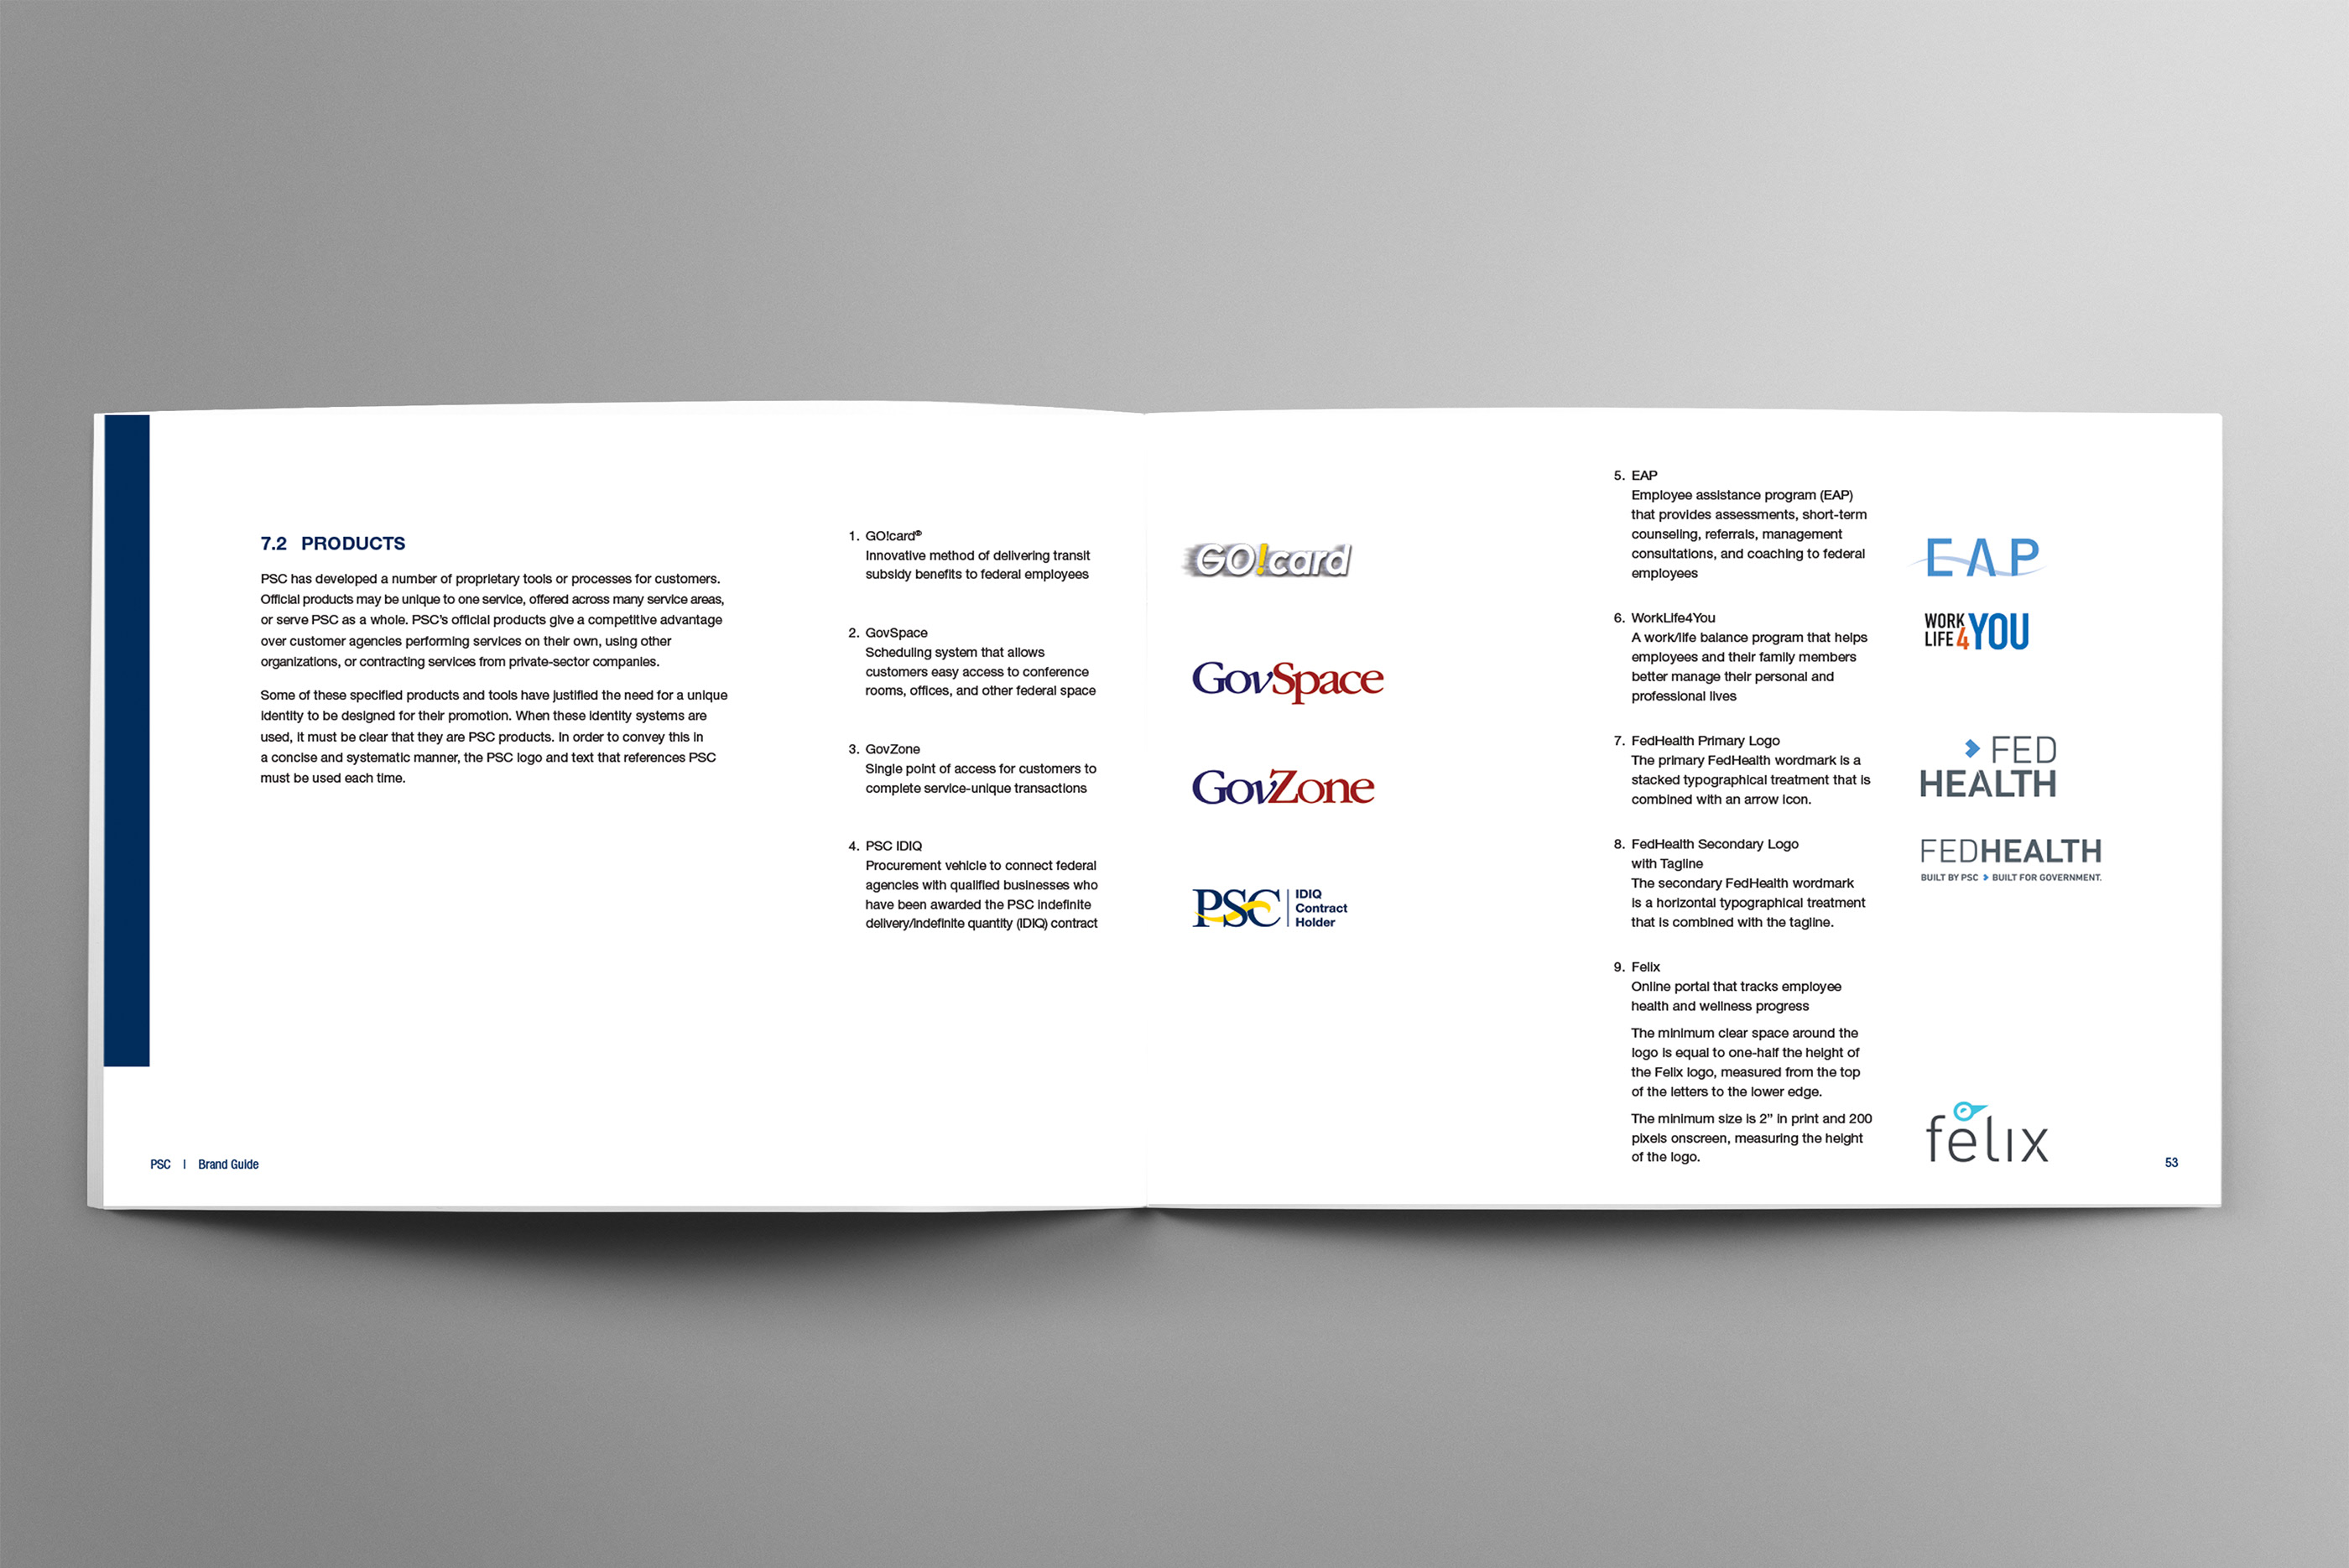 Program Support Center Brand and Style Guide on Behance